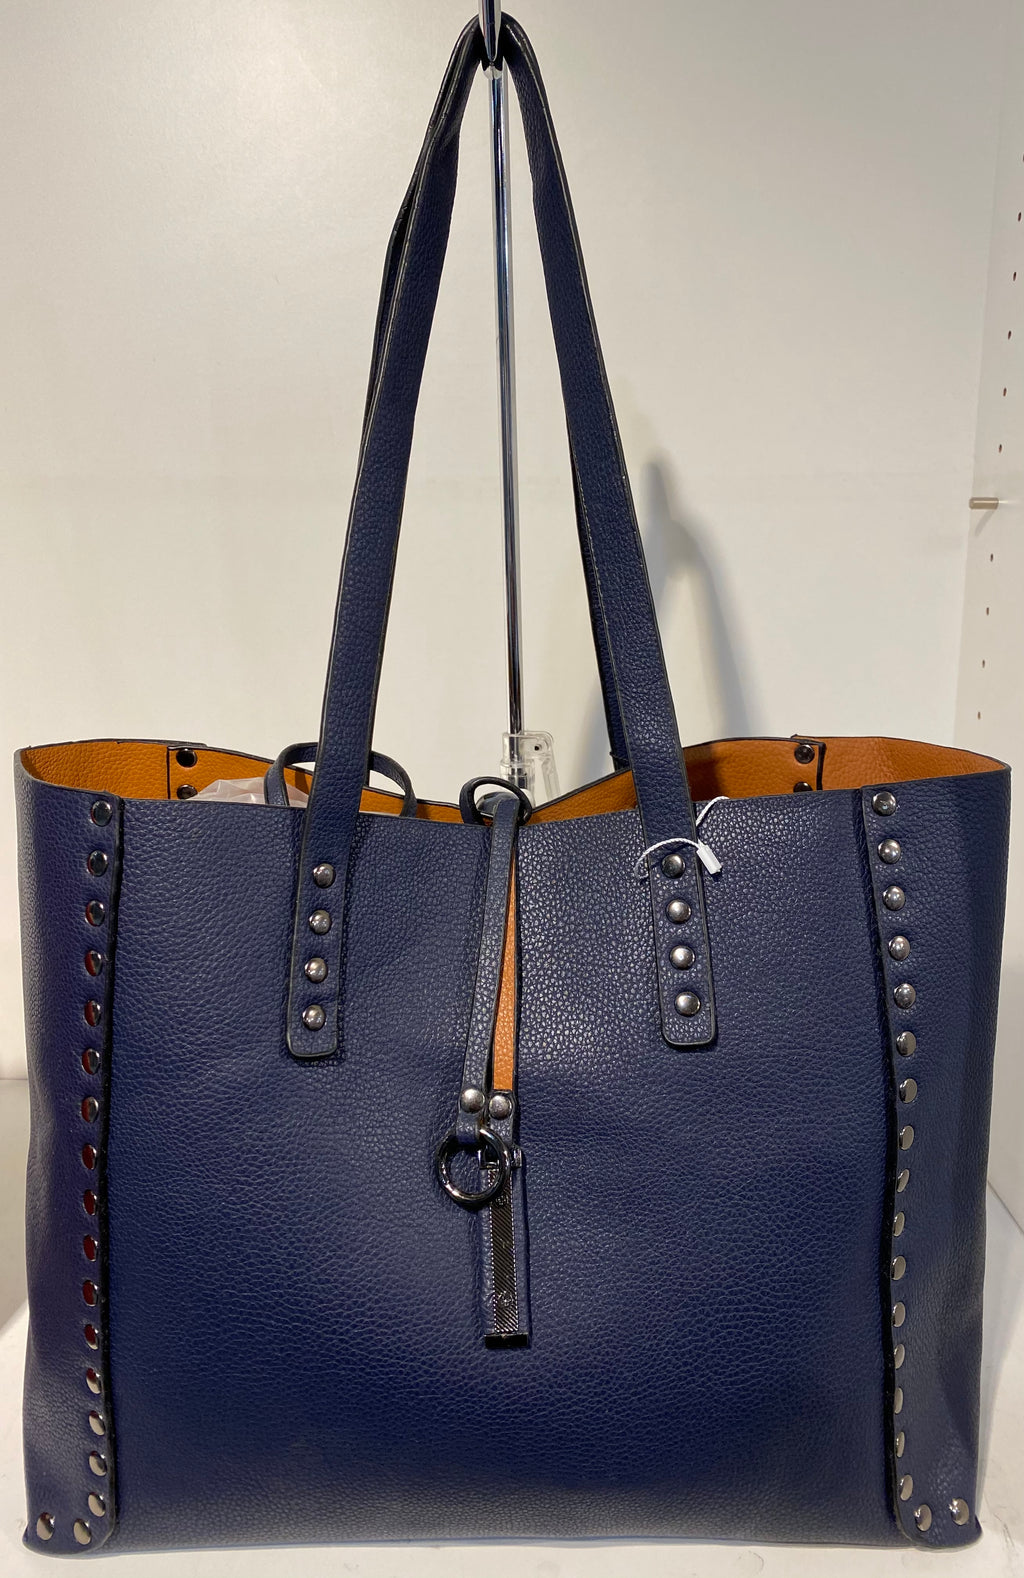 Reversible Handbag With Studded Detail